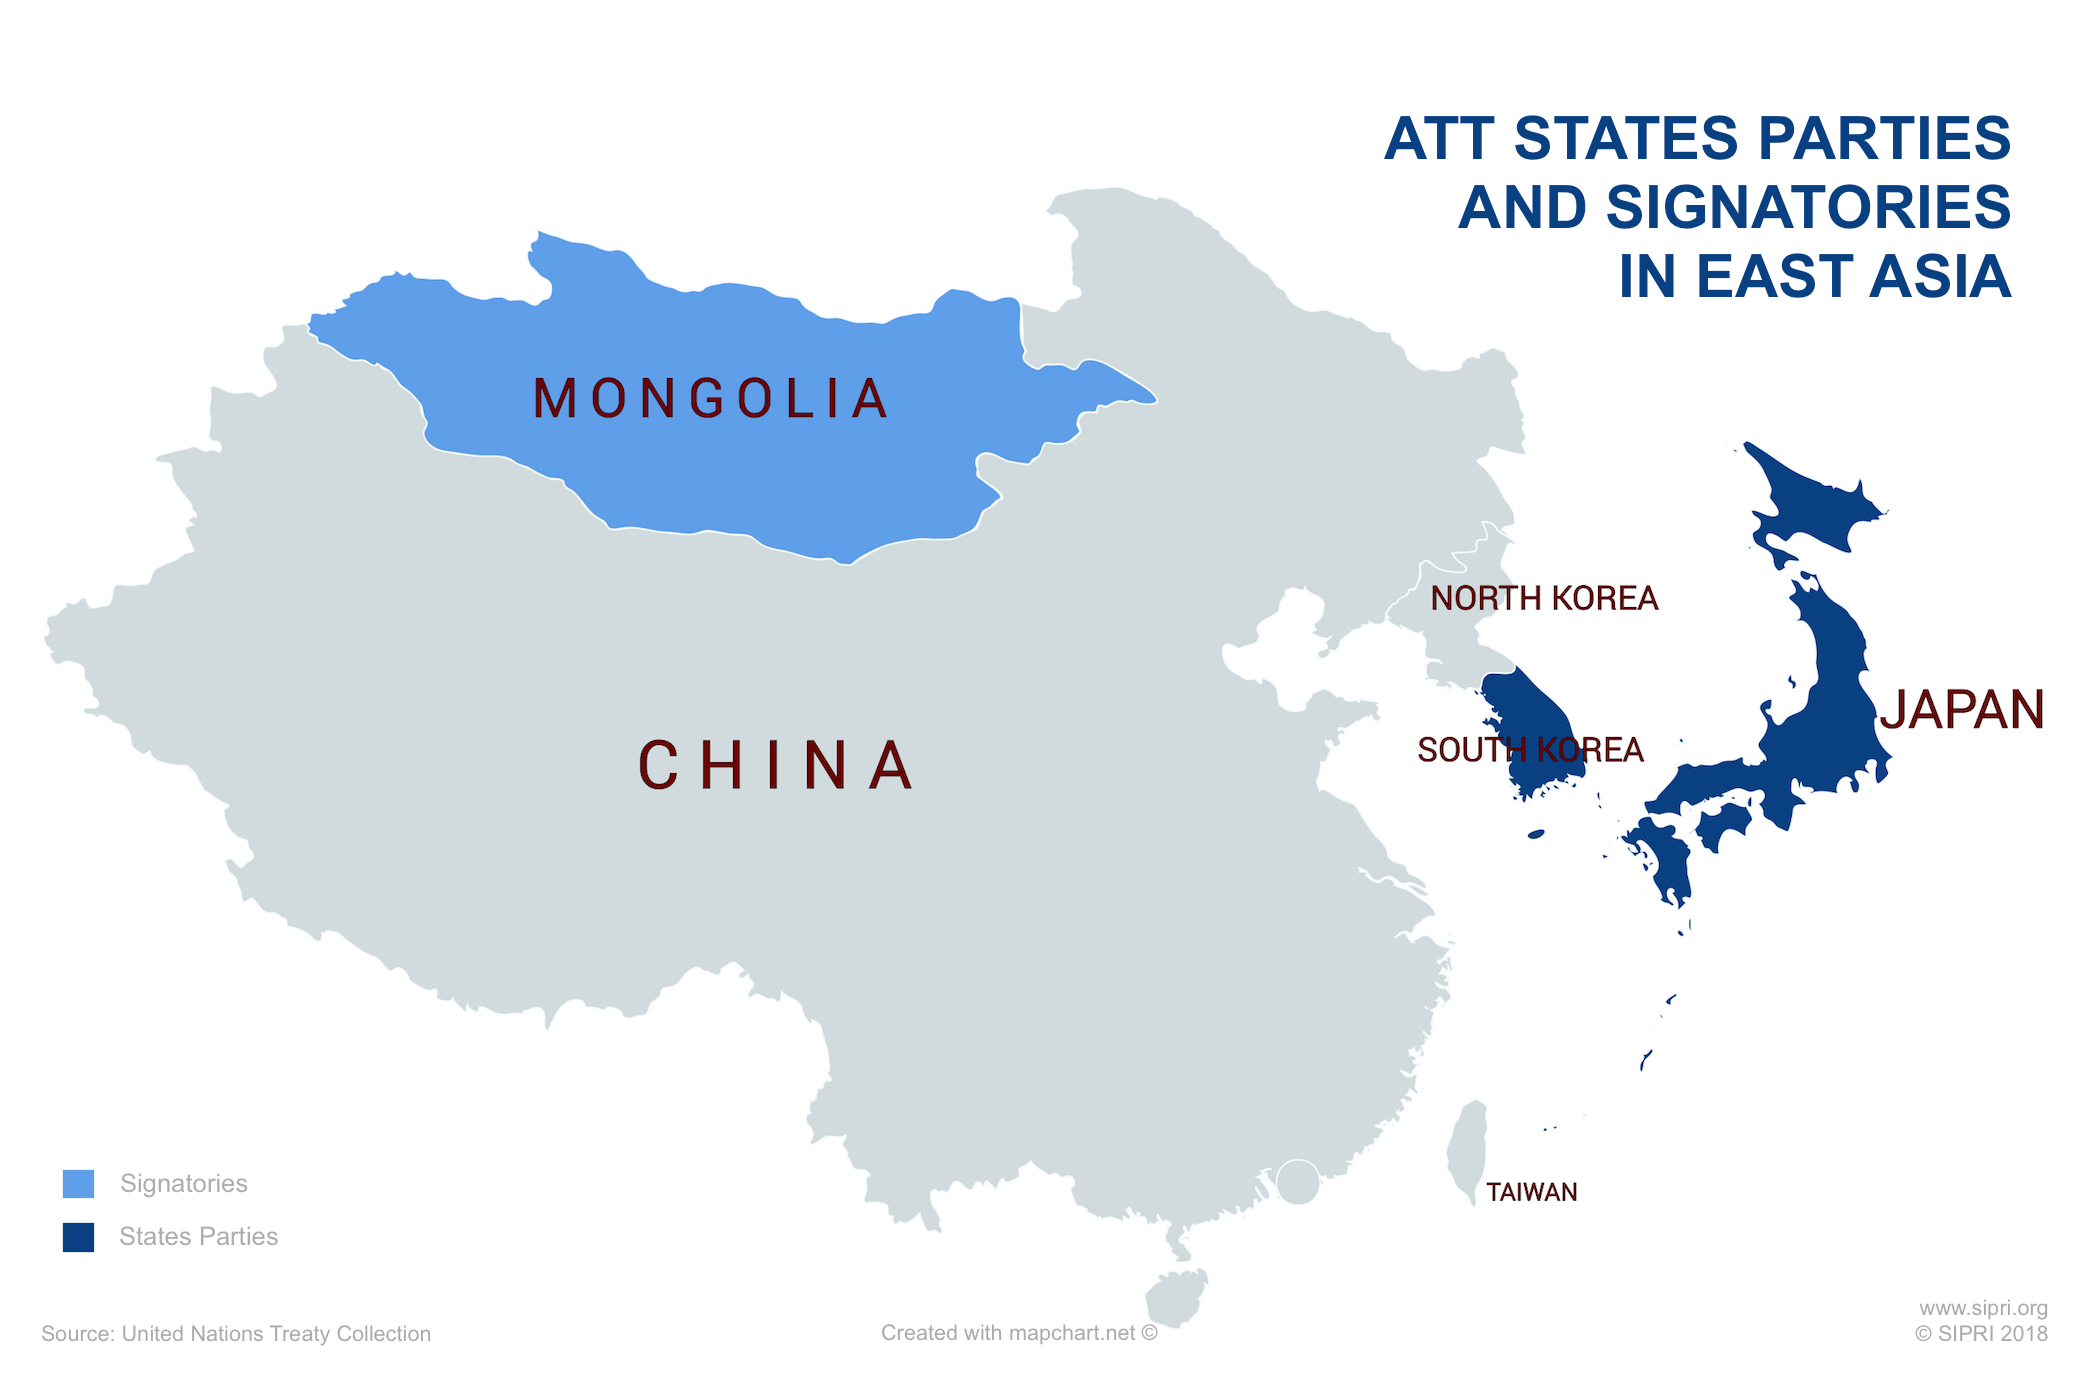 ATT states parties and signatories in East Asia